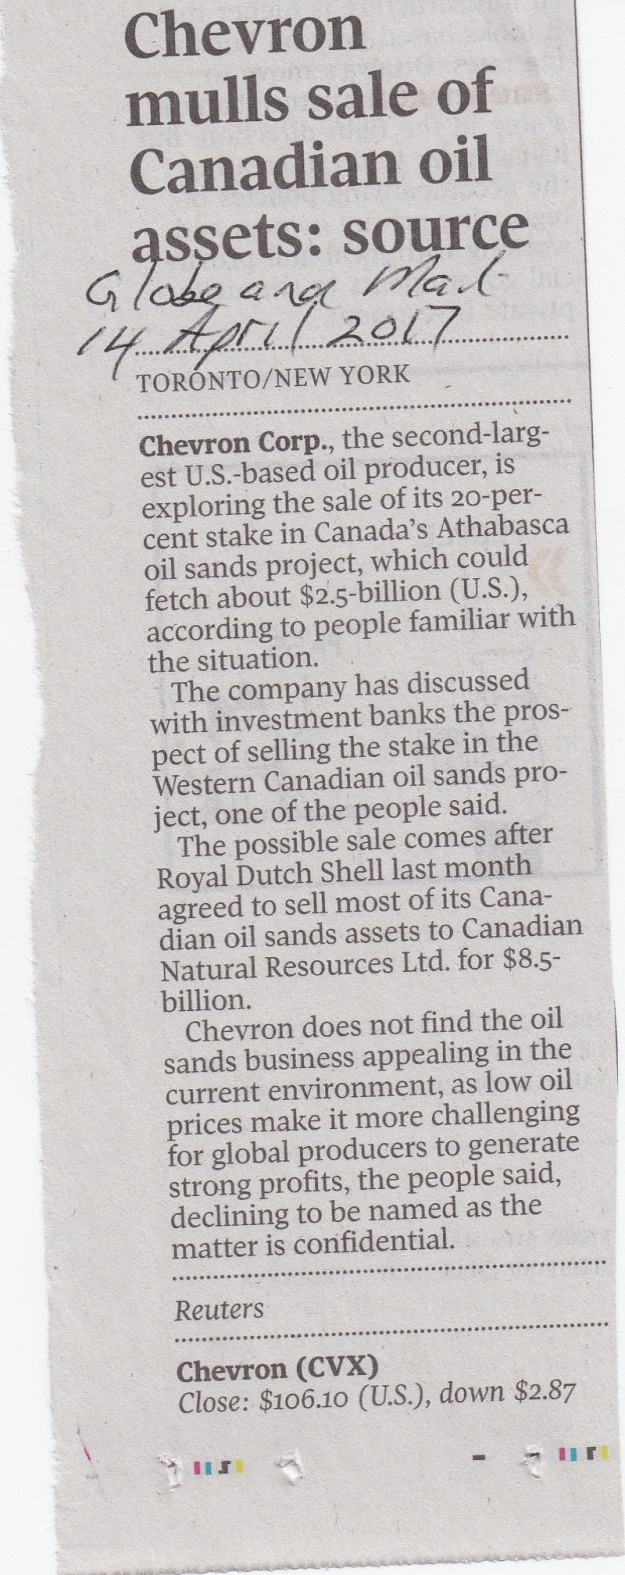 Chevron mulls sale of Canadian oil assets-source14-4-17 GM